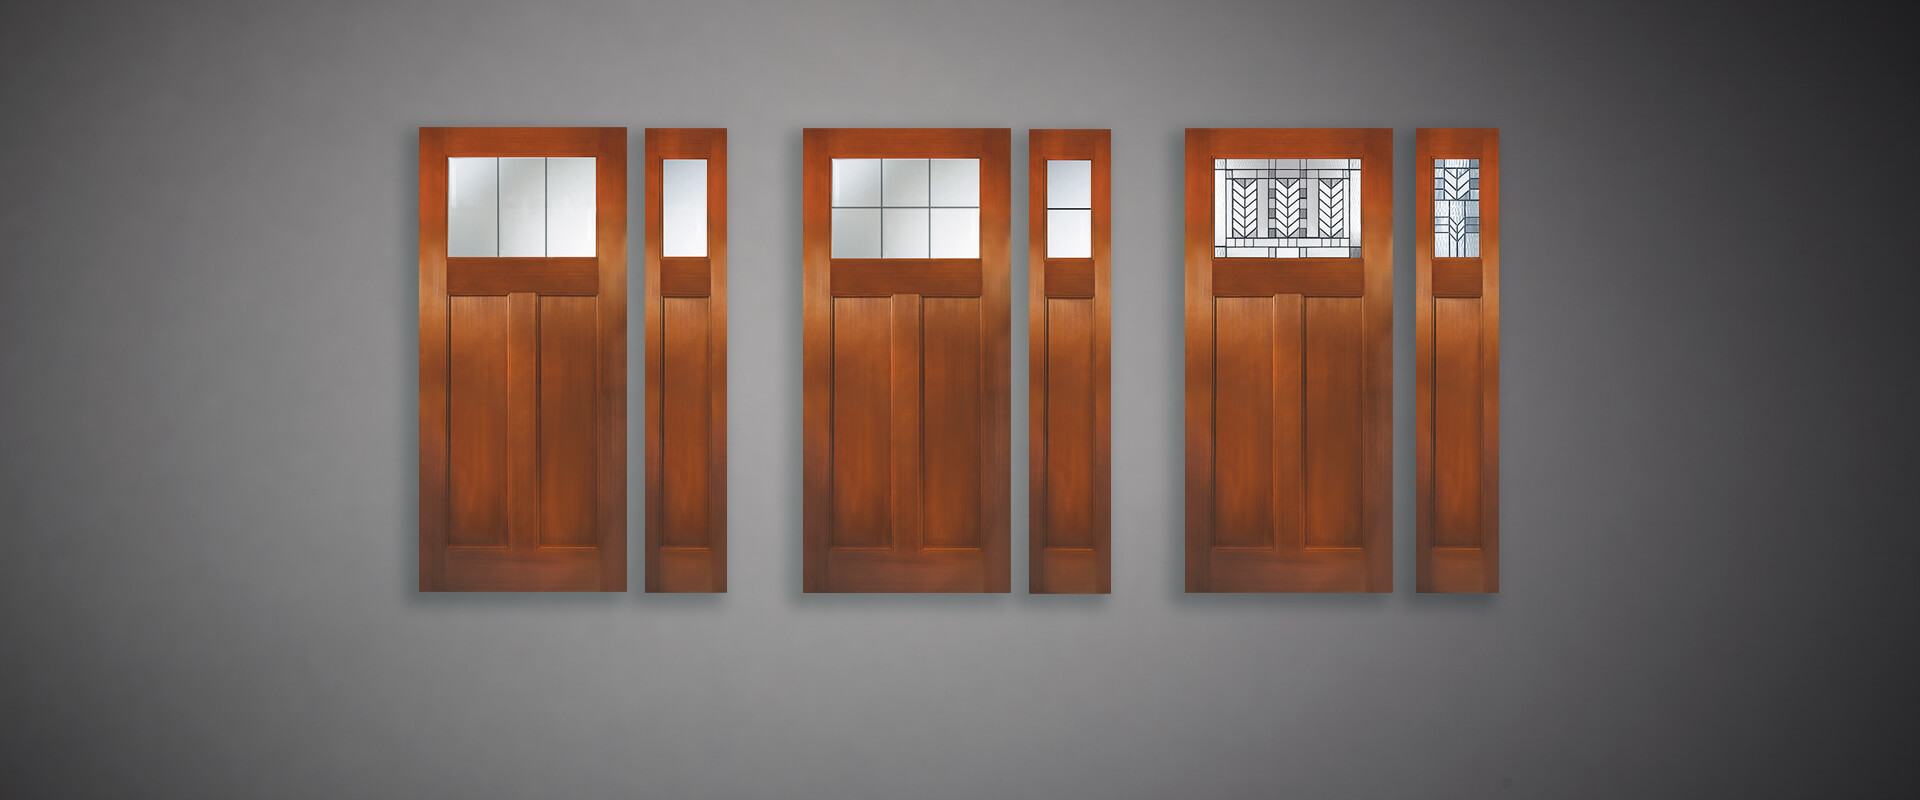 craftsman fir fiberglass door panels